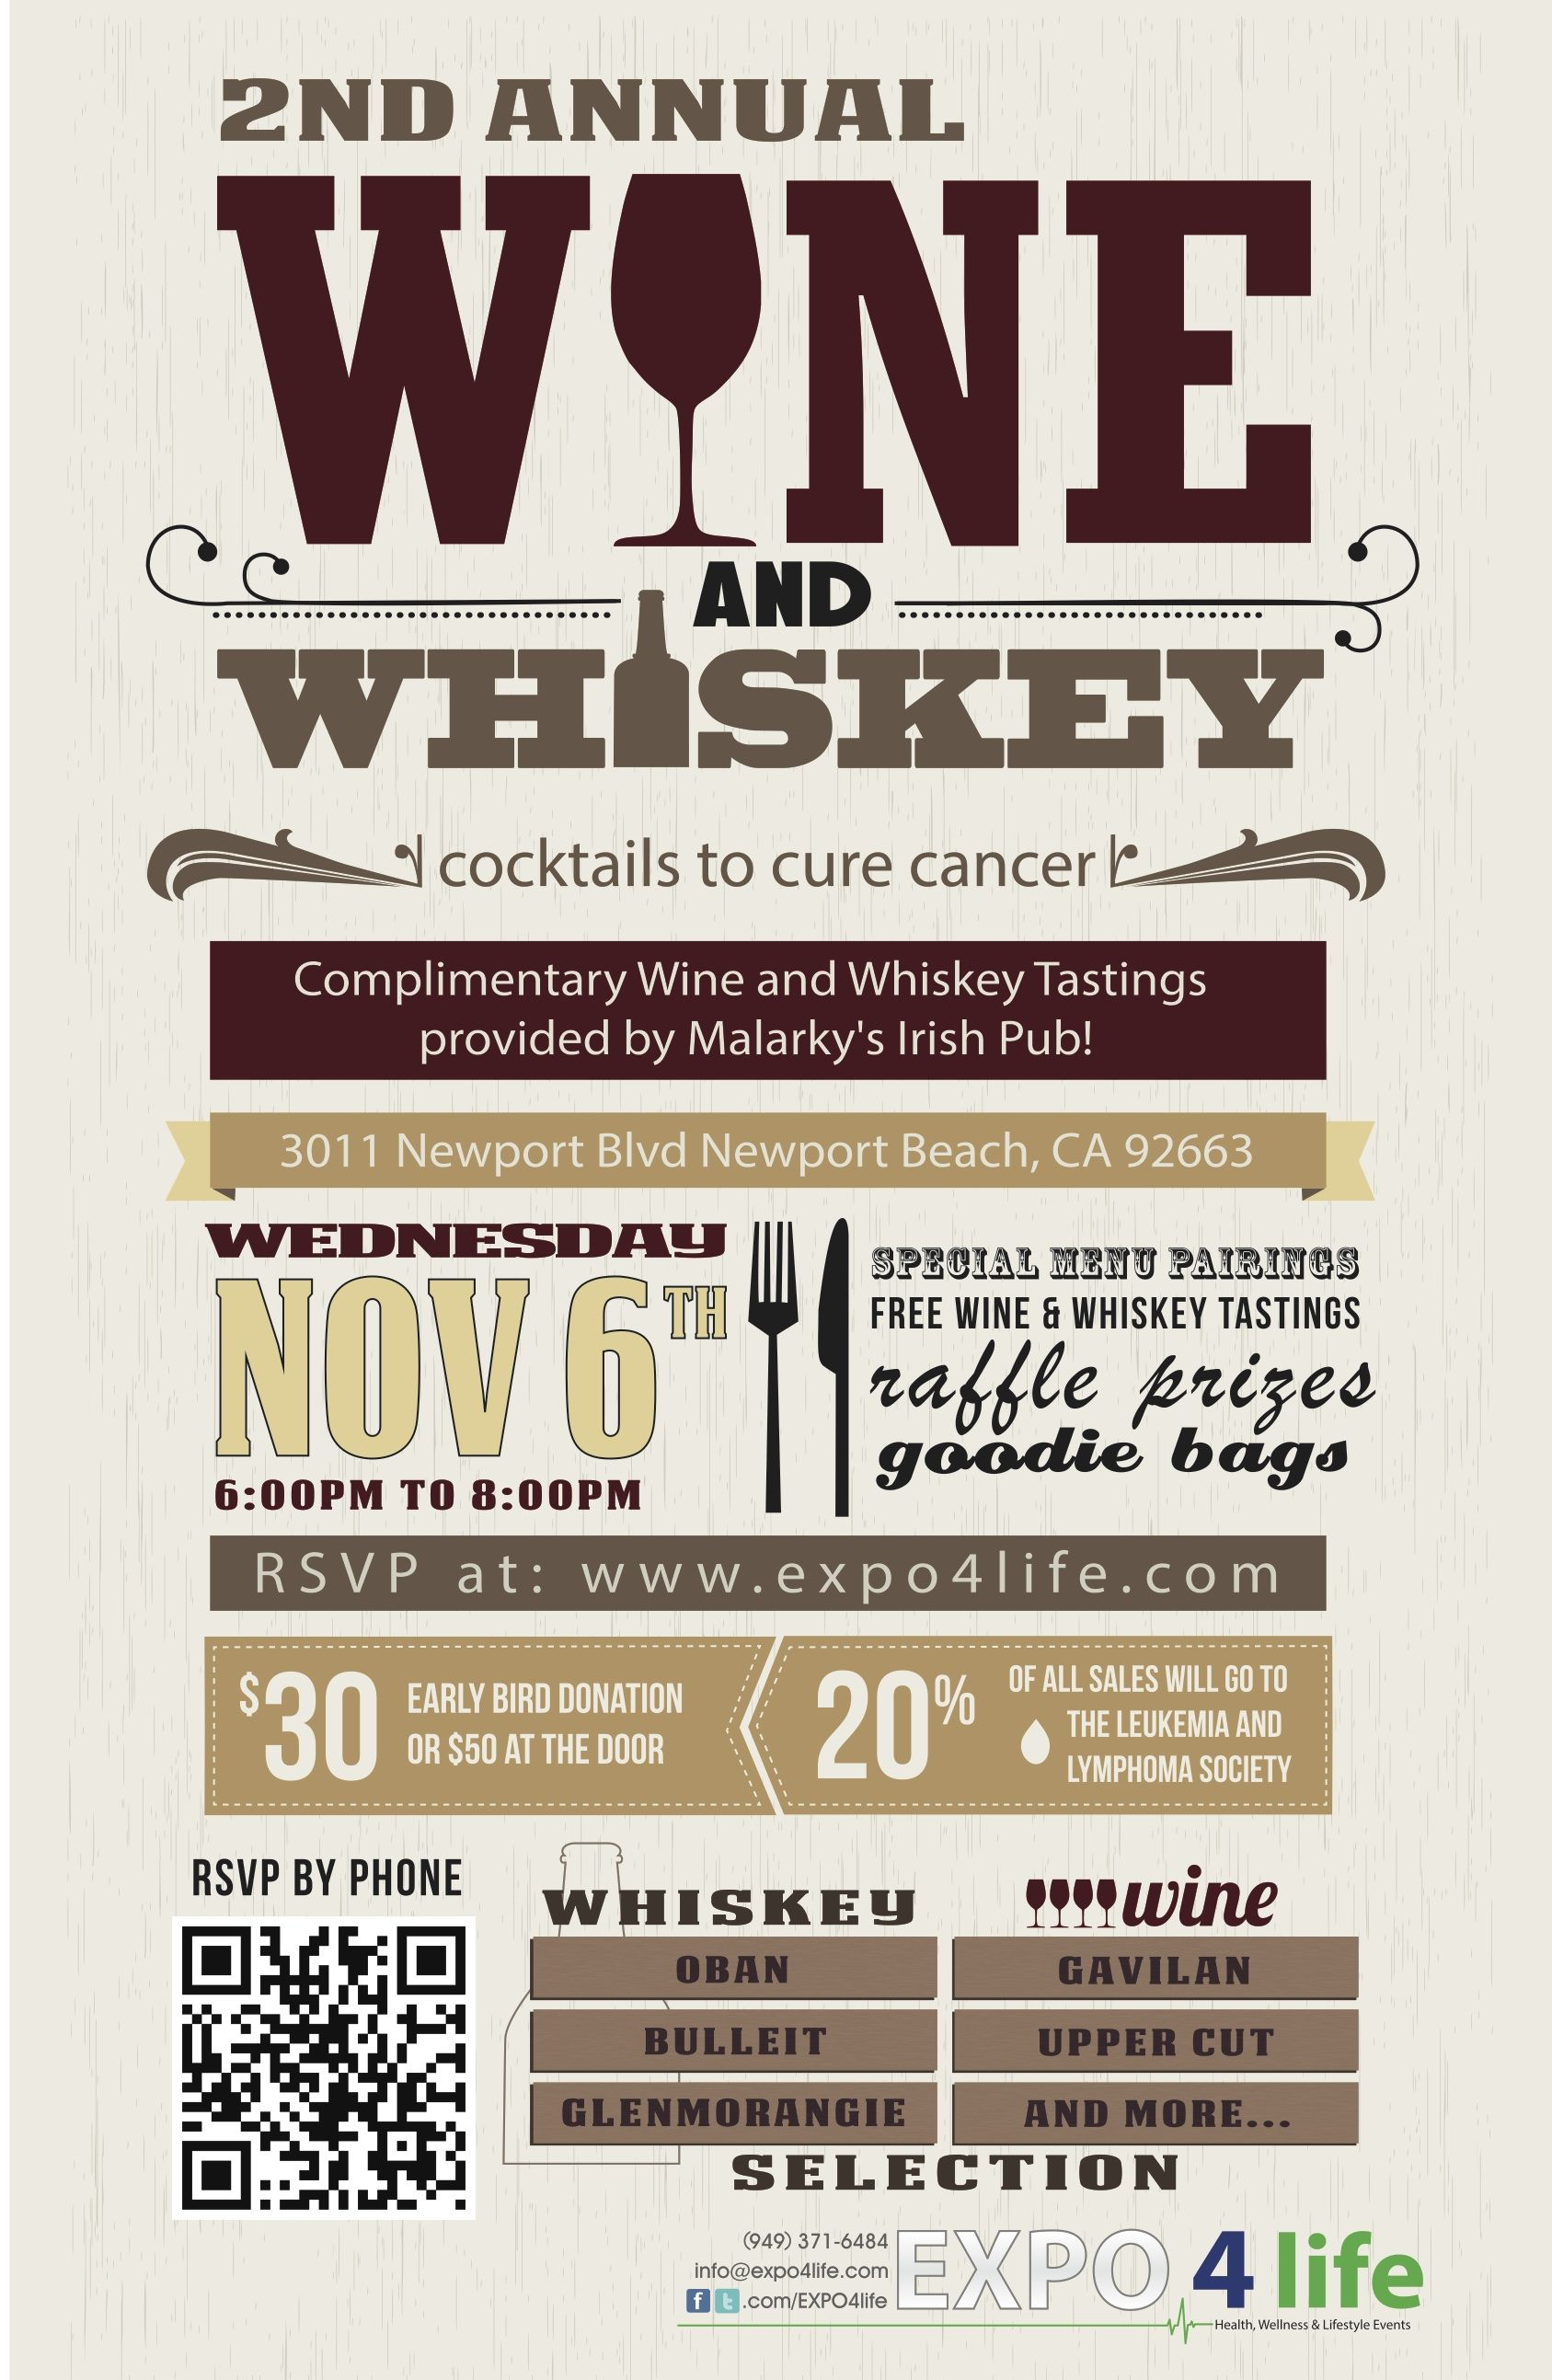 wine tasting journal template - expo 4 life wine and whiskey charity event at malarky 39 s